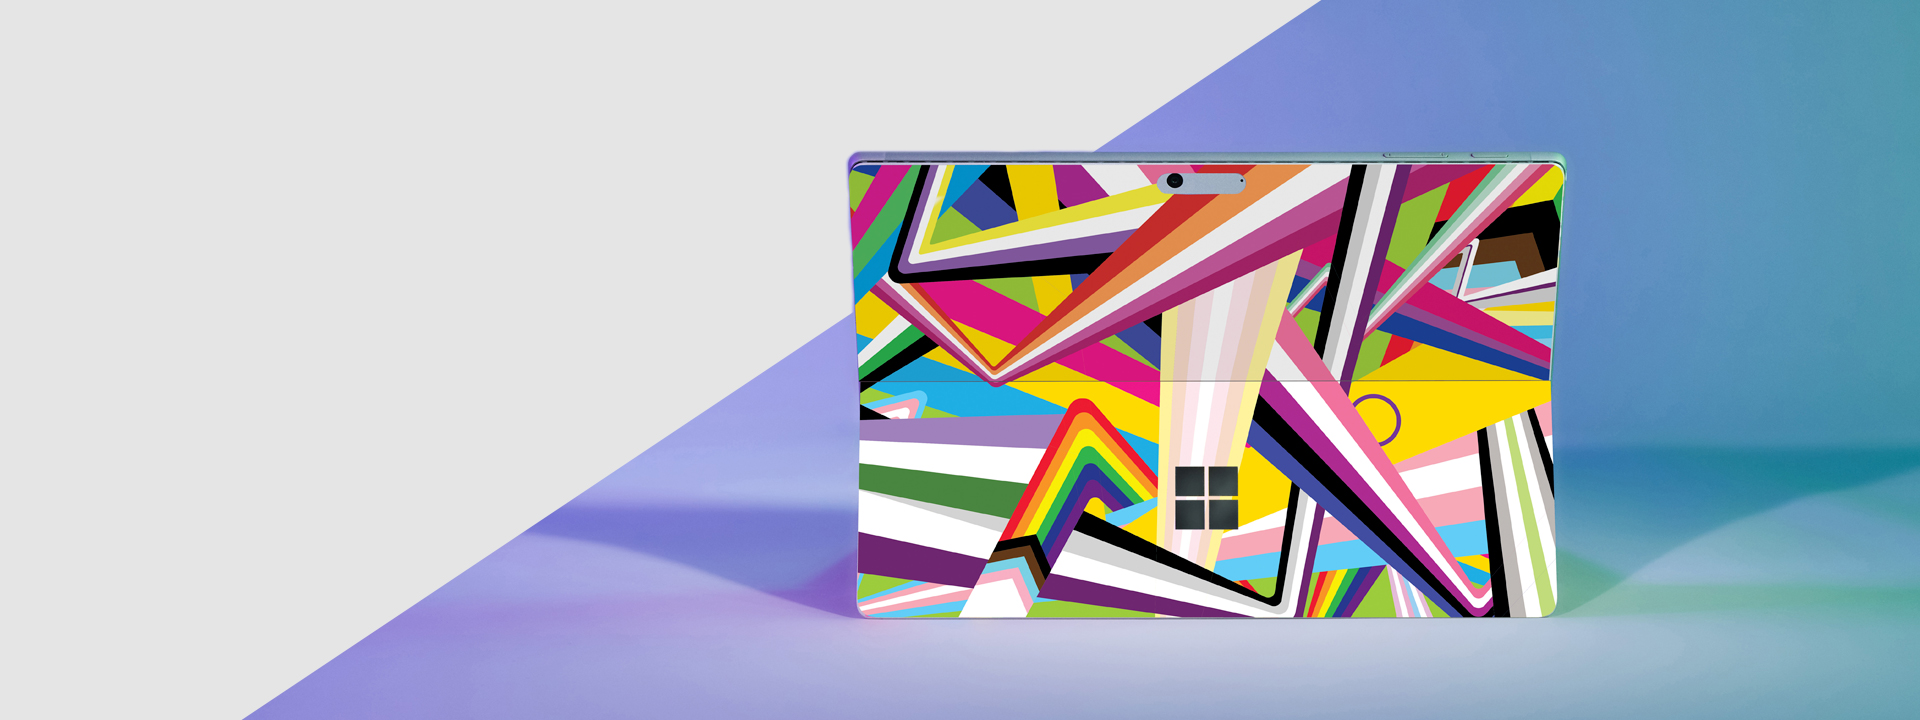 Image shows Microsoft Pride device cover featuring bright colorblocking